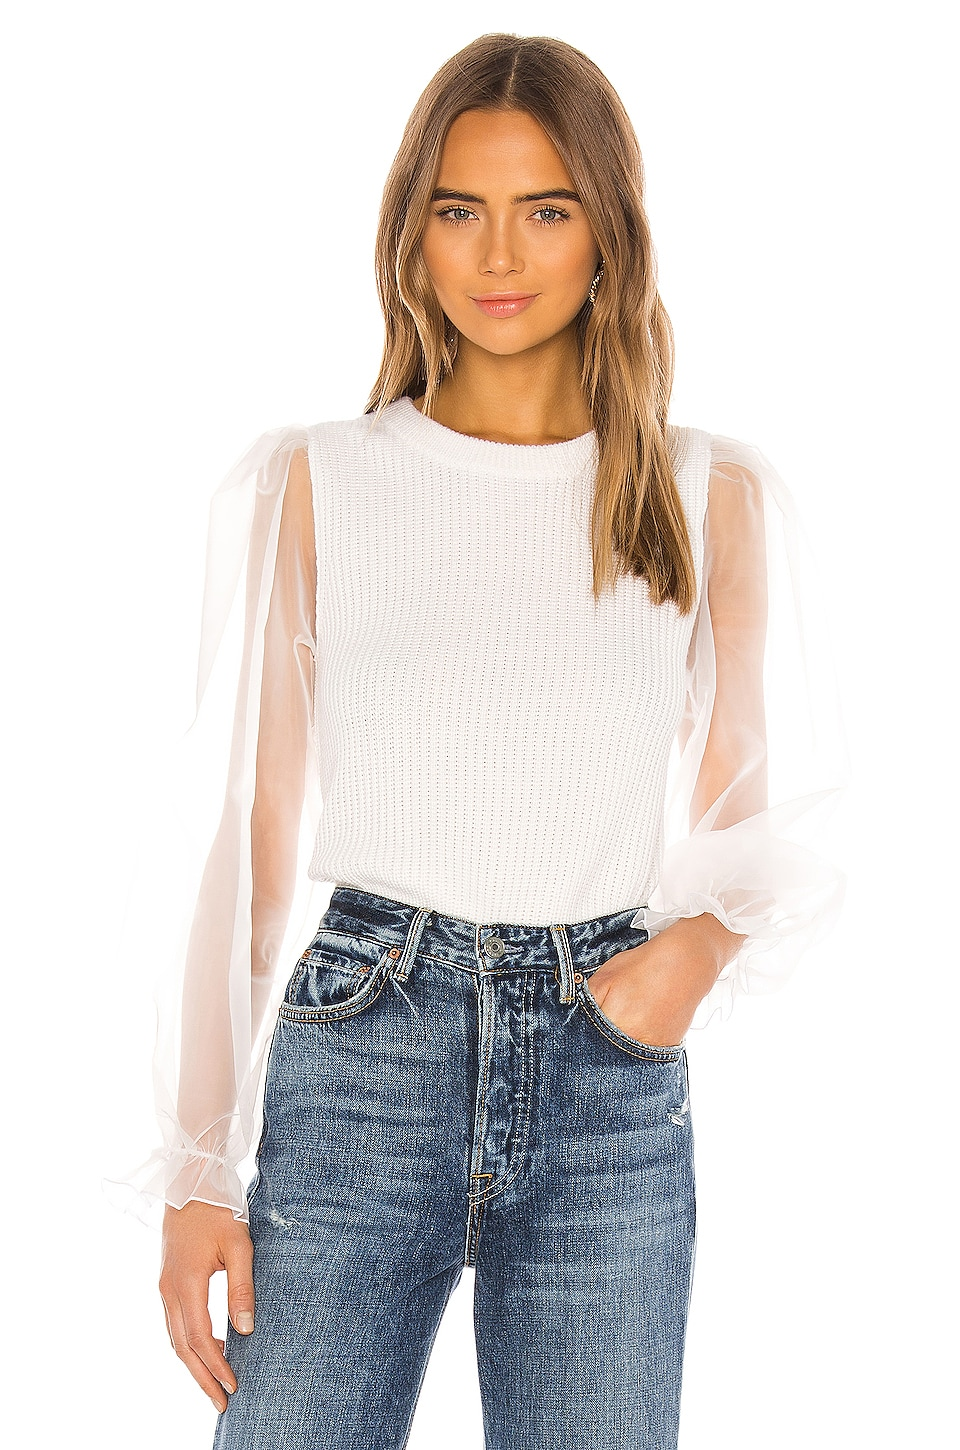 MAJORELLE Kinship Sweater in Ivory